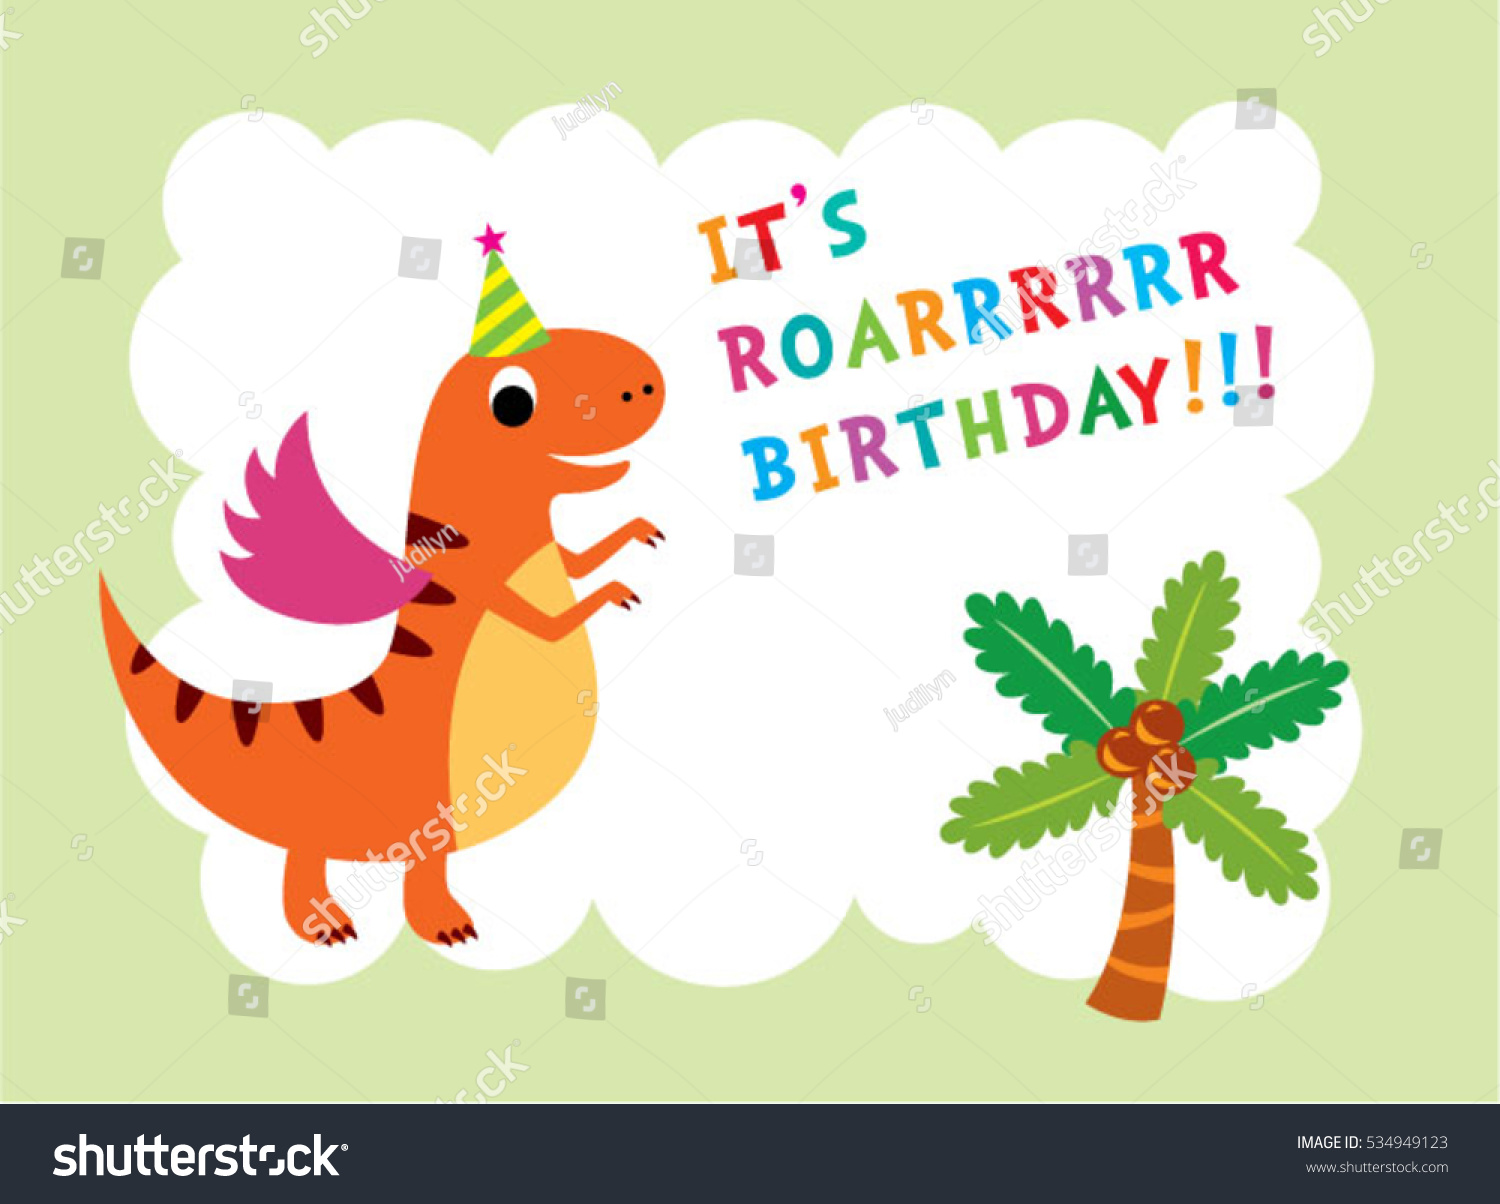 Dinosaur Funny Birthday Card Greeting By Recycled Paper Greetings